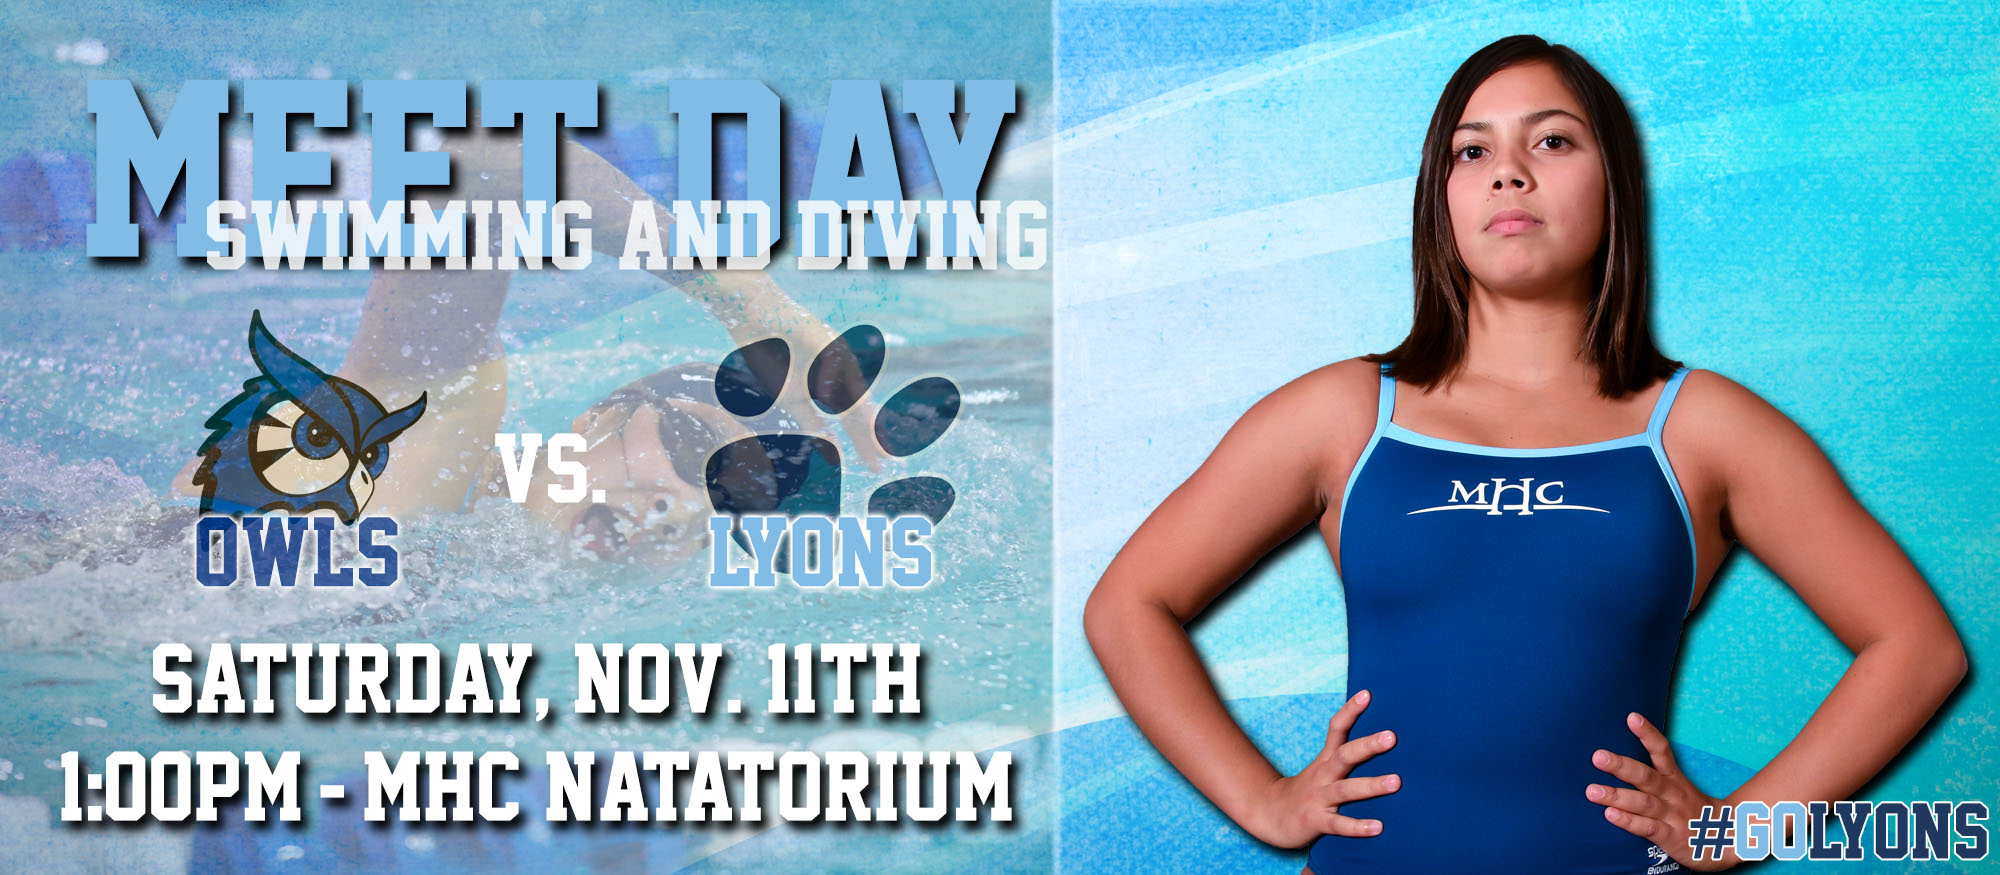 Gameday graphic promoting the Lyons swimming & diving home meet on Saturday, November 11th against Westfield State at 1pm.